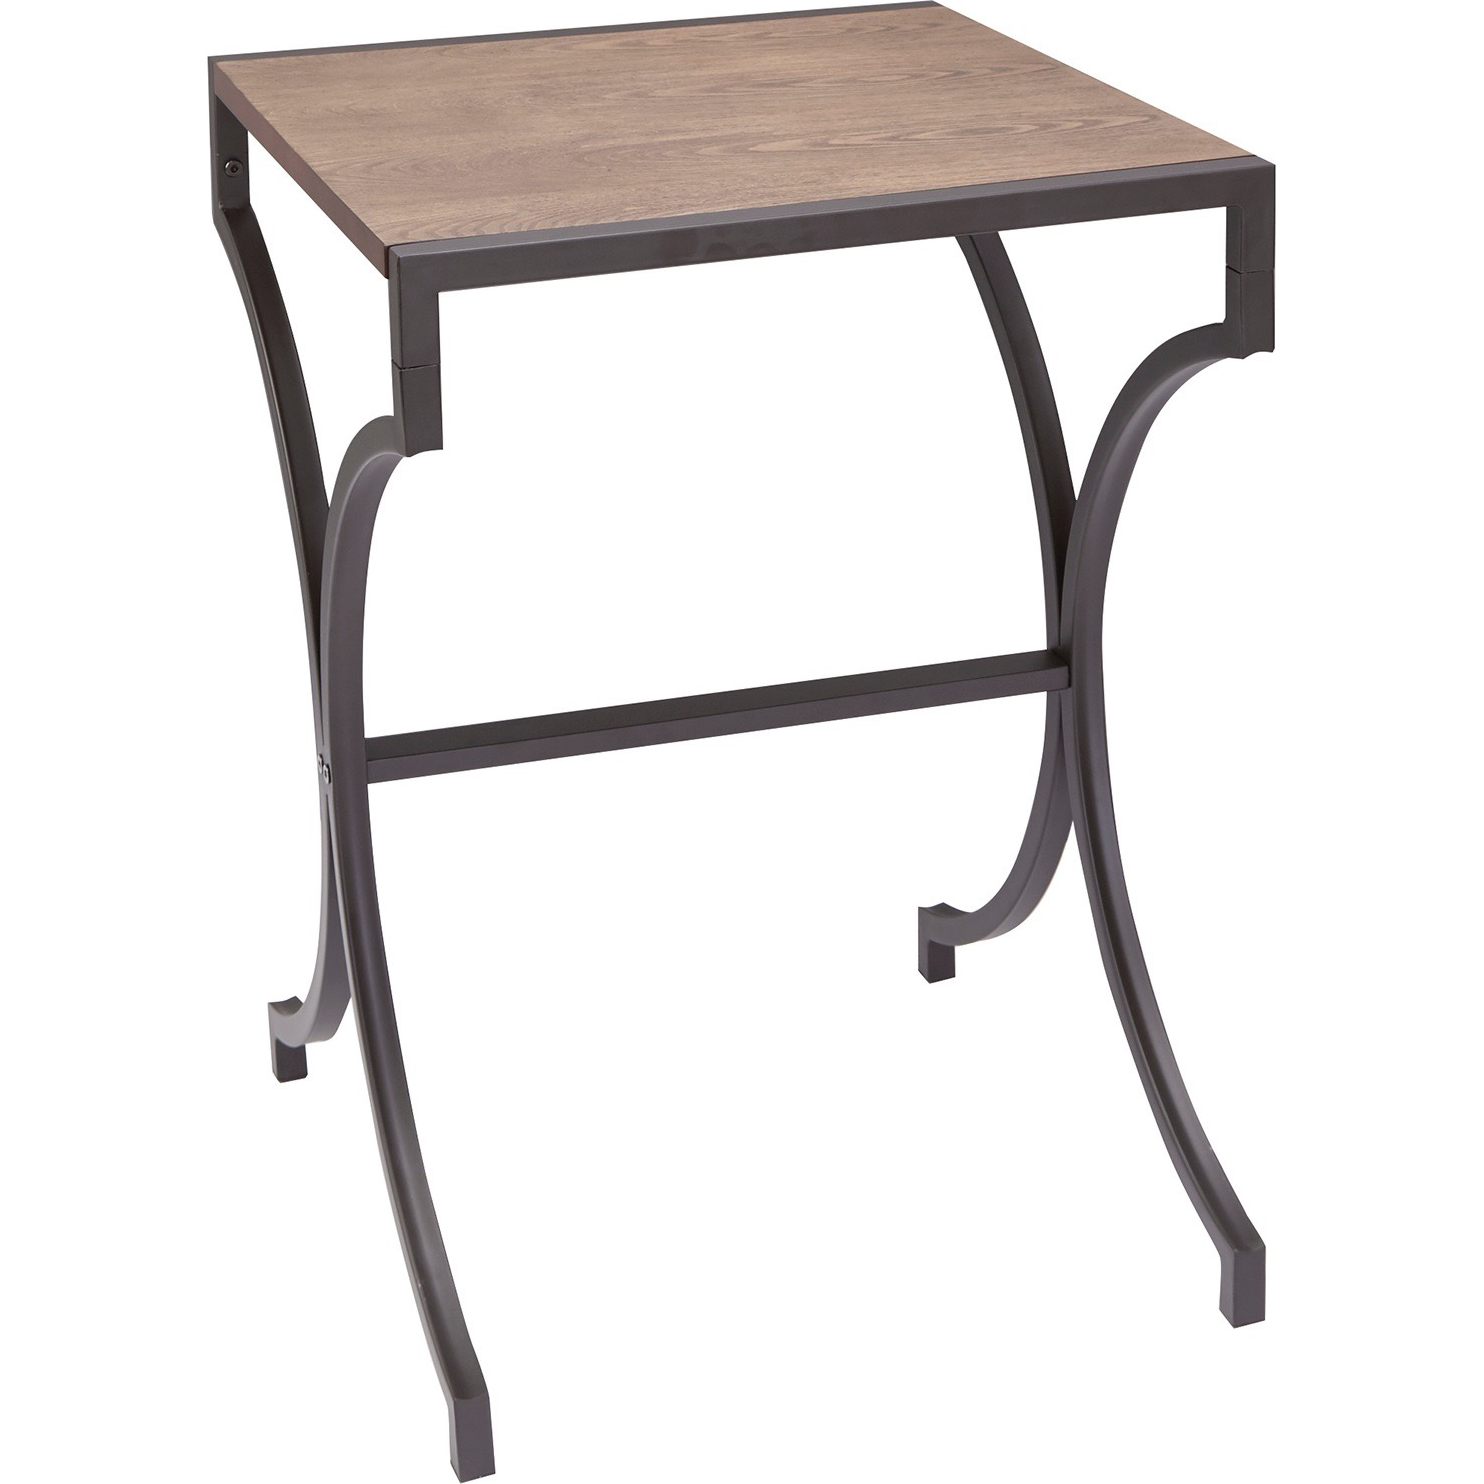 Better Homes & Gardens Willow Metal Accent Table, Black Finish